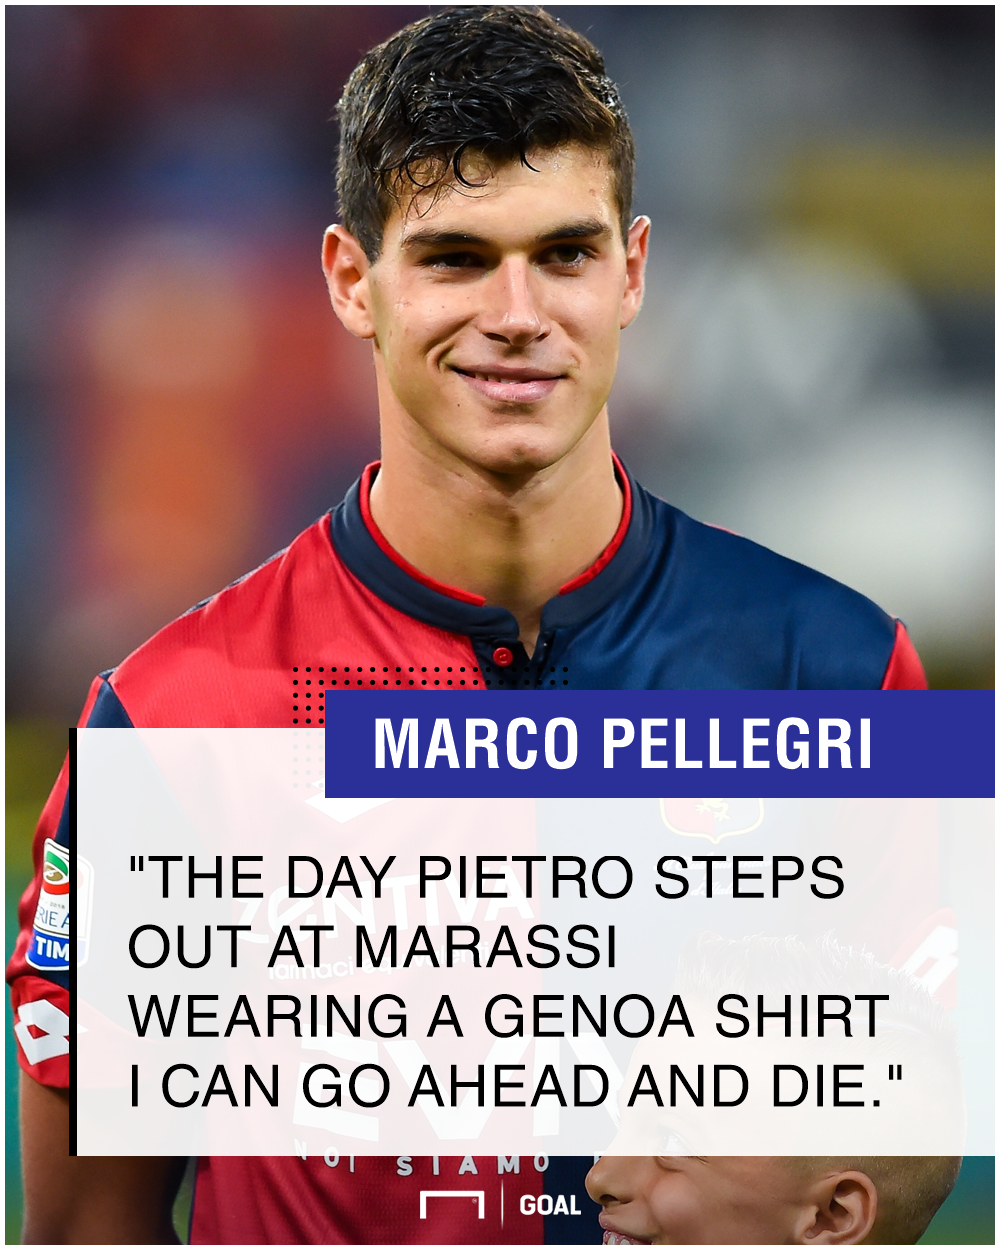 Pietro Pellegri father PS